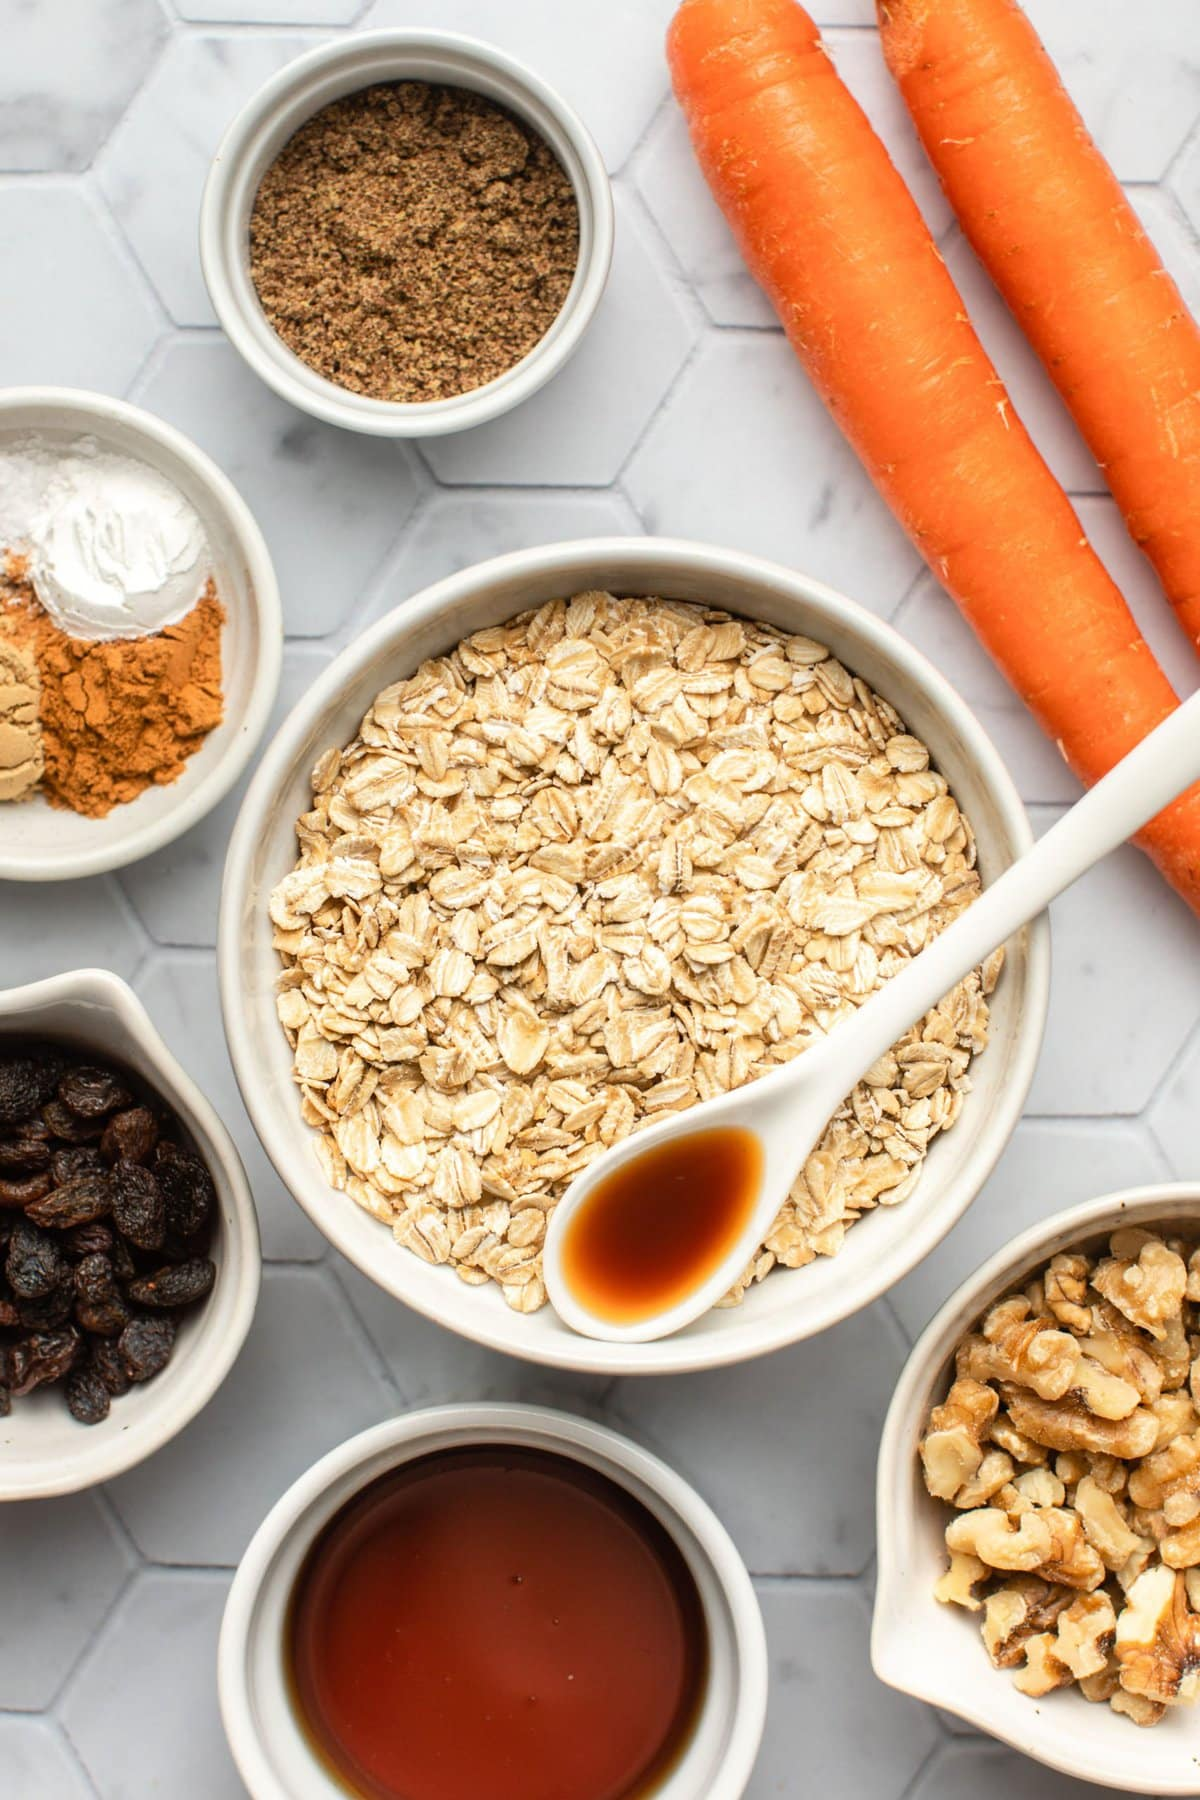 ingredients for carrot cake oatmeal in white bowls on tile background